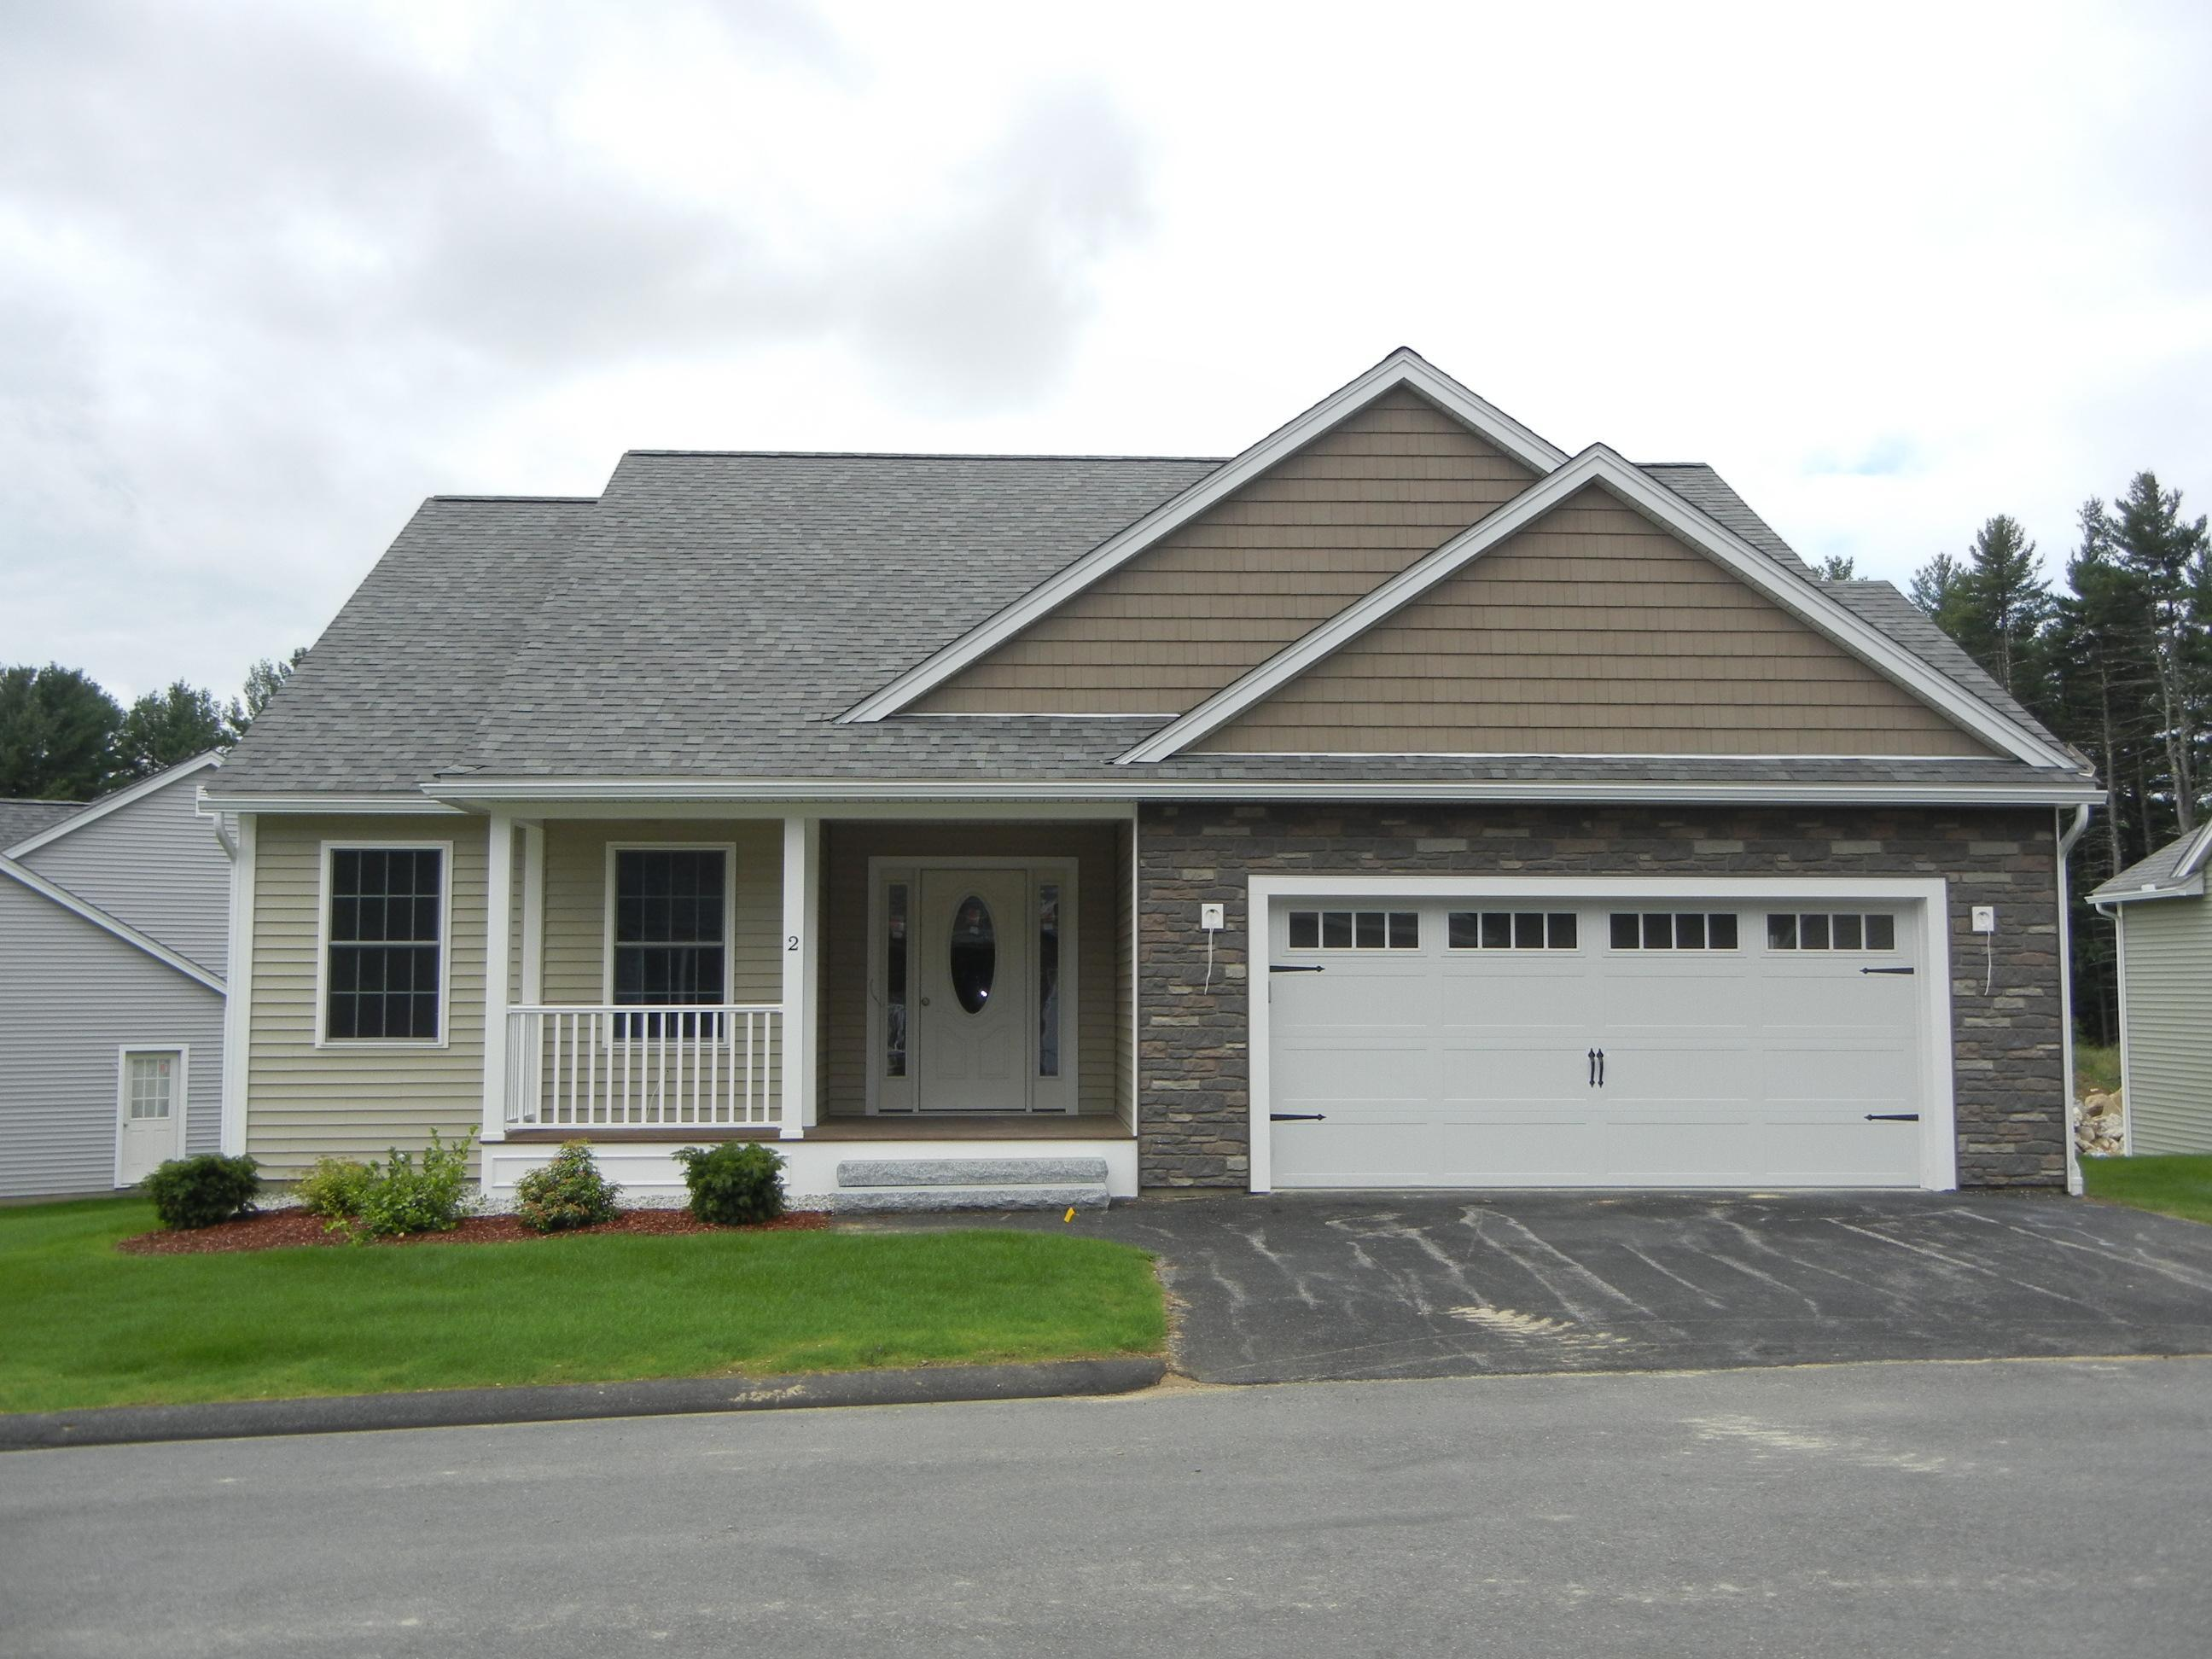 Southern new hampshire real estate adult community homes solutioingenieria Choice Image